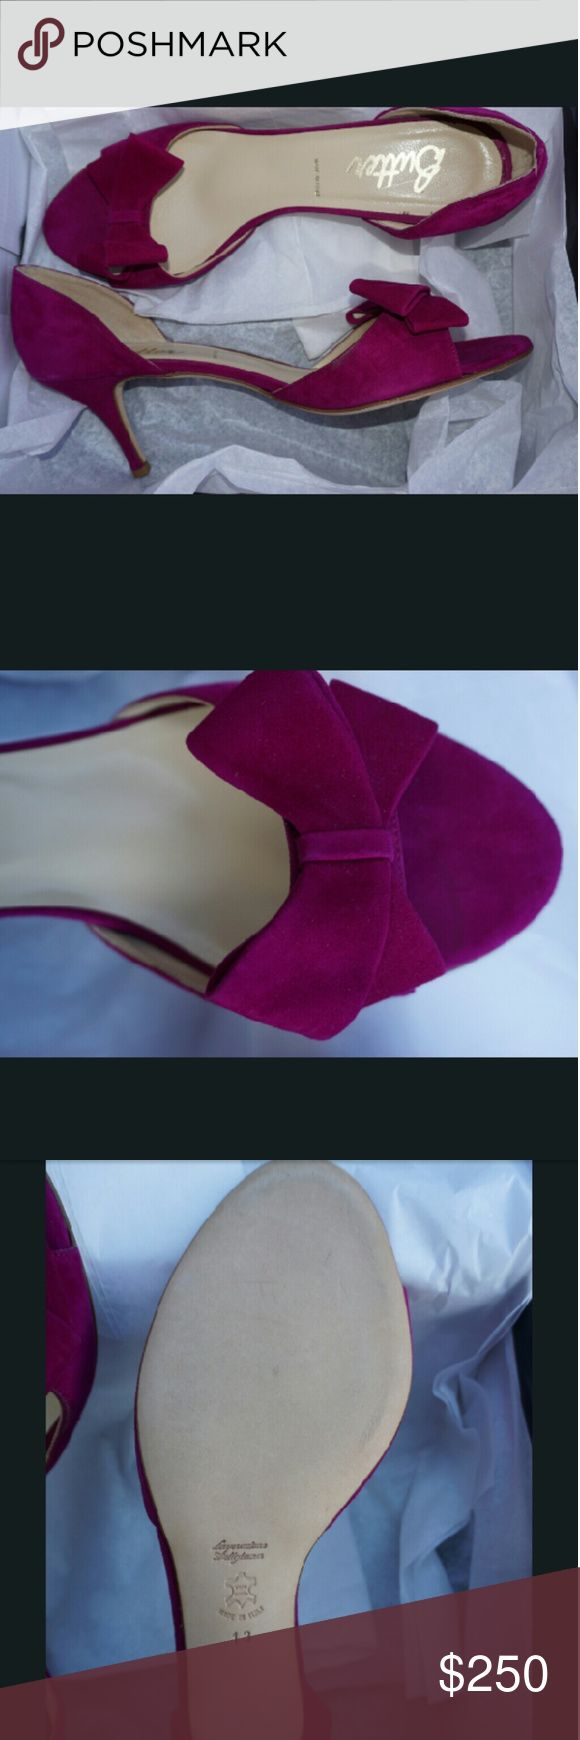 Butter Shoes D'orsay Heel Beautiful D'orsay heel, in a lovely raspberry tone. Never worn, in size 13. Butter Shoes Shoes Heels